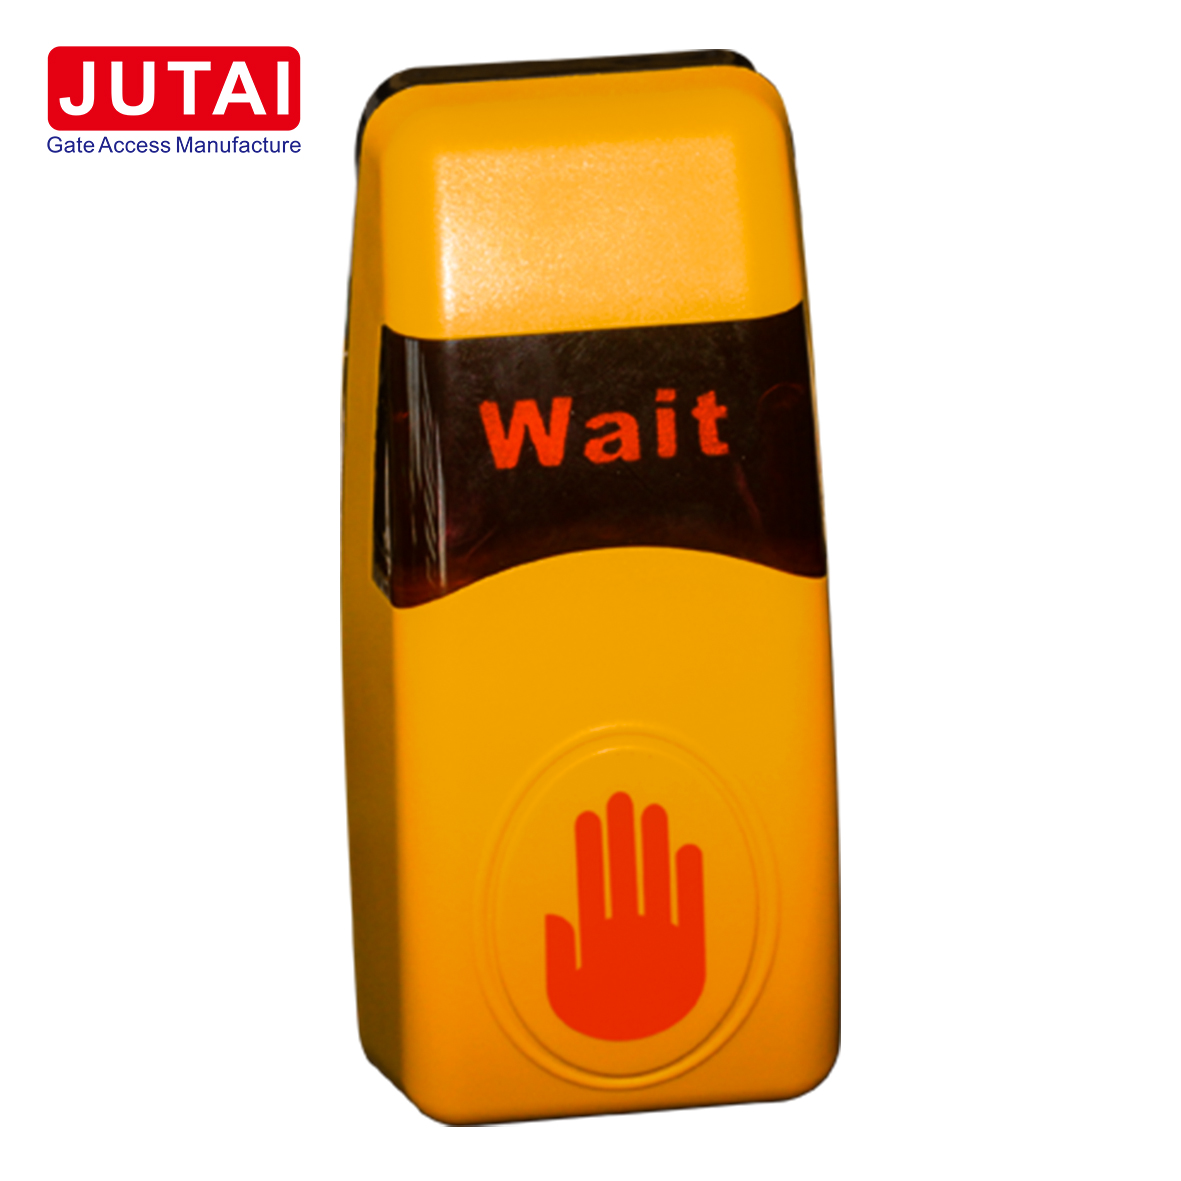 JUTAI JTG-TH Door Infrared Sensor Touchless Button For Access Control System and gate access system